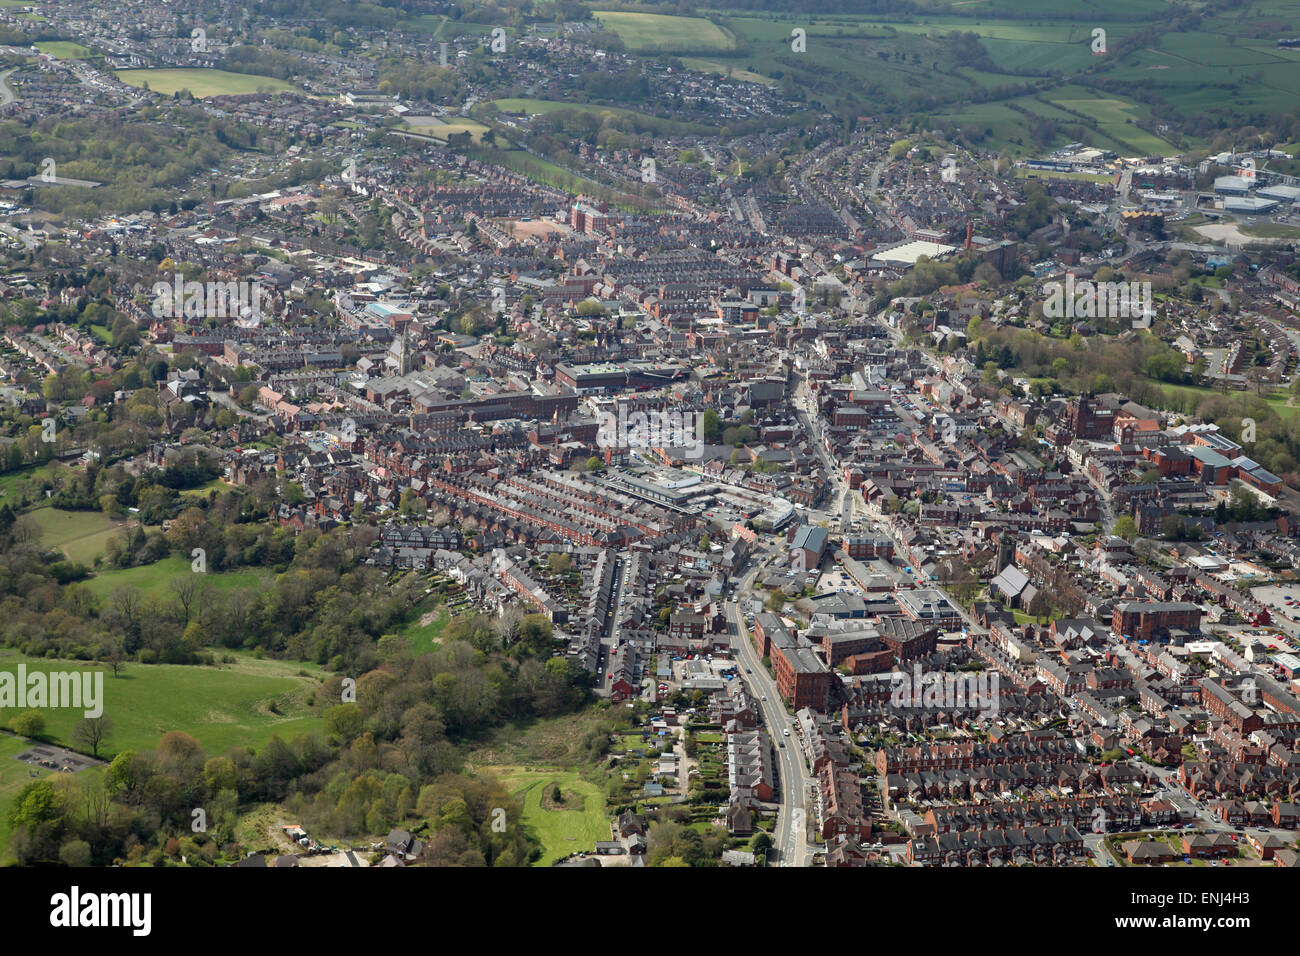 aerial view of the Staffordshire town of Leek, UK - Stock Image